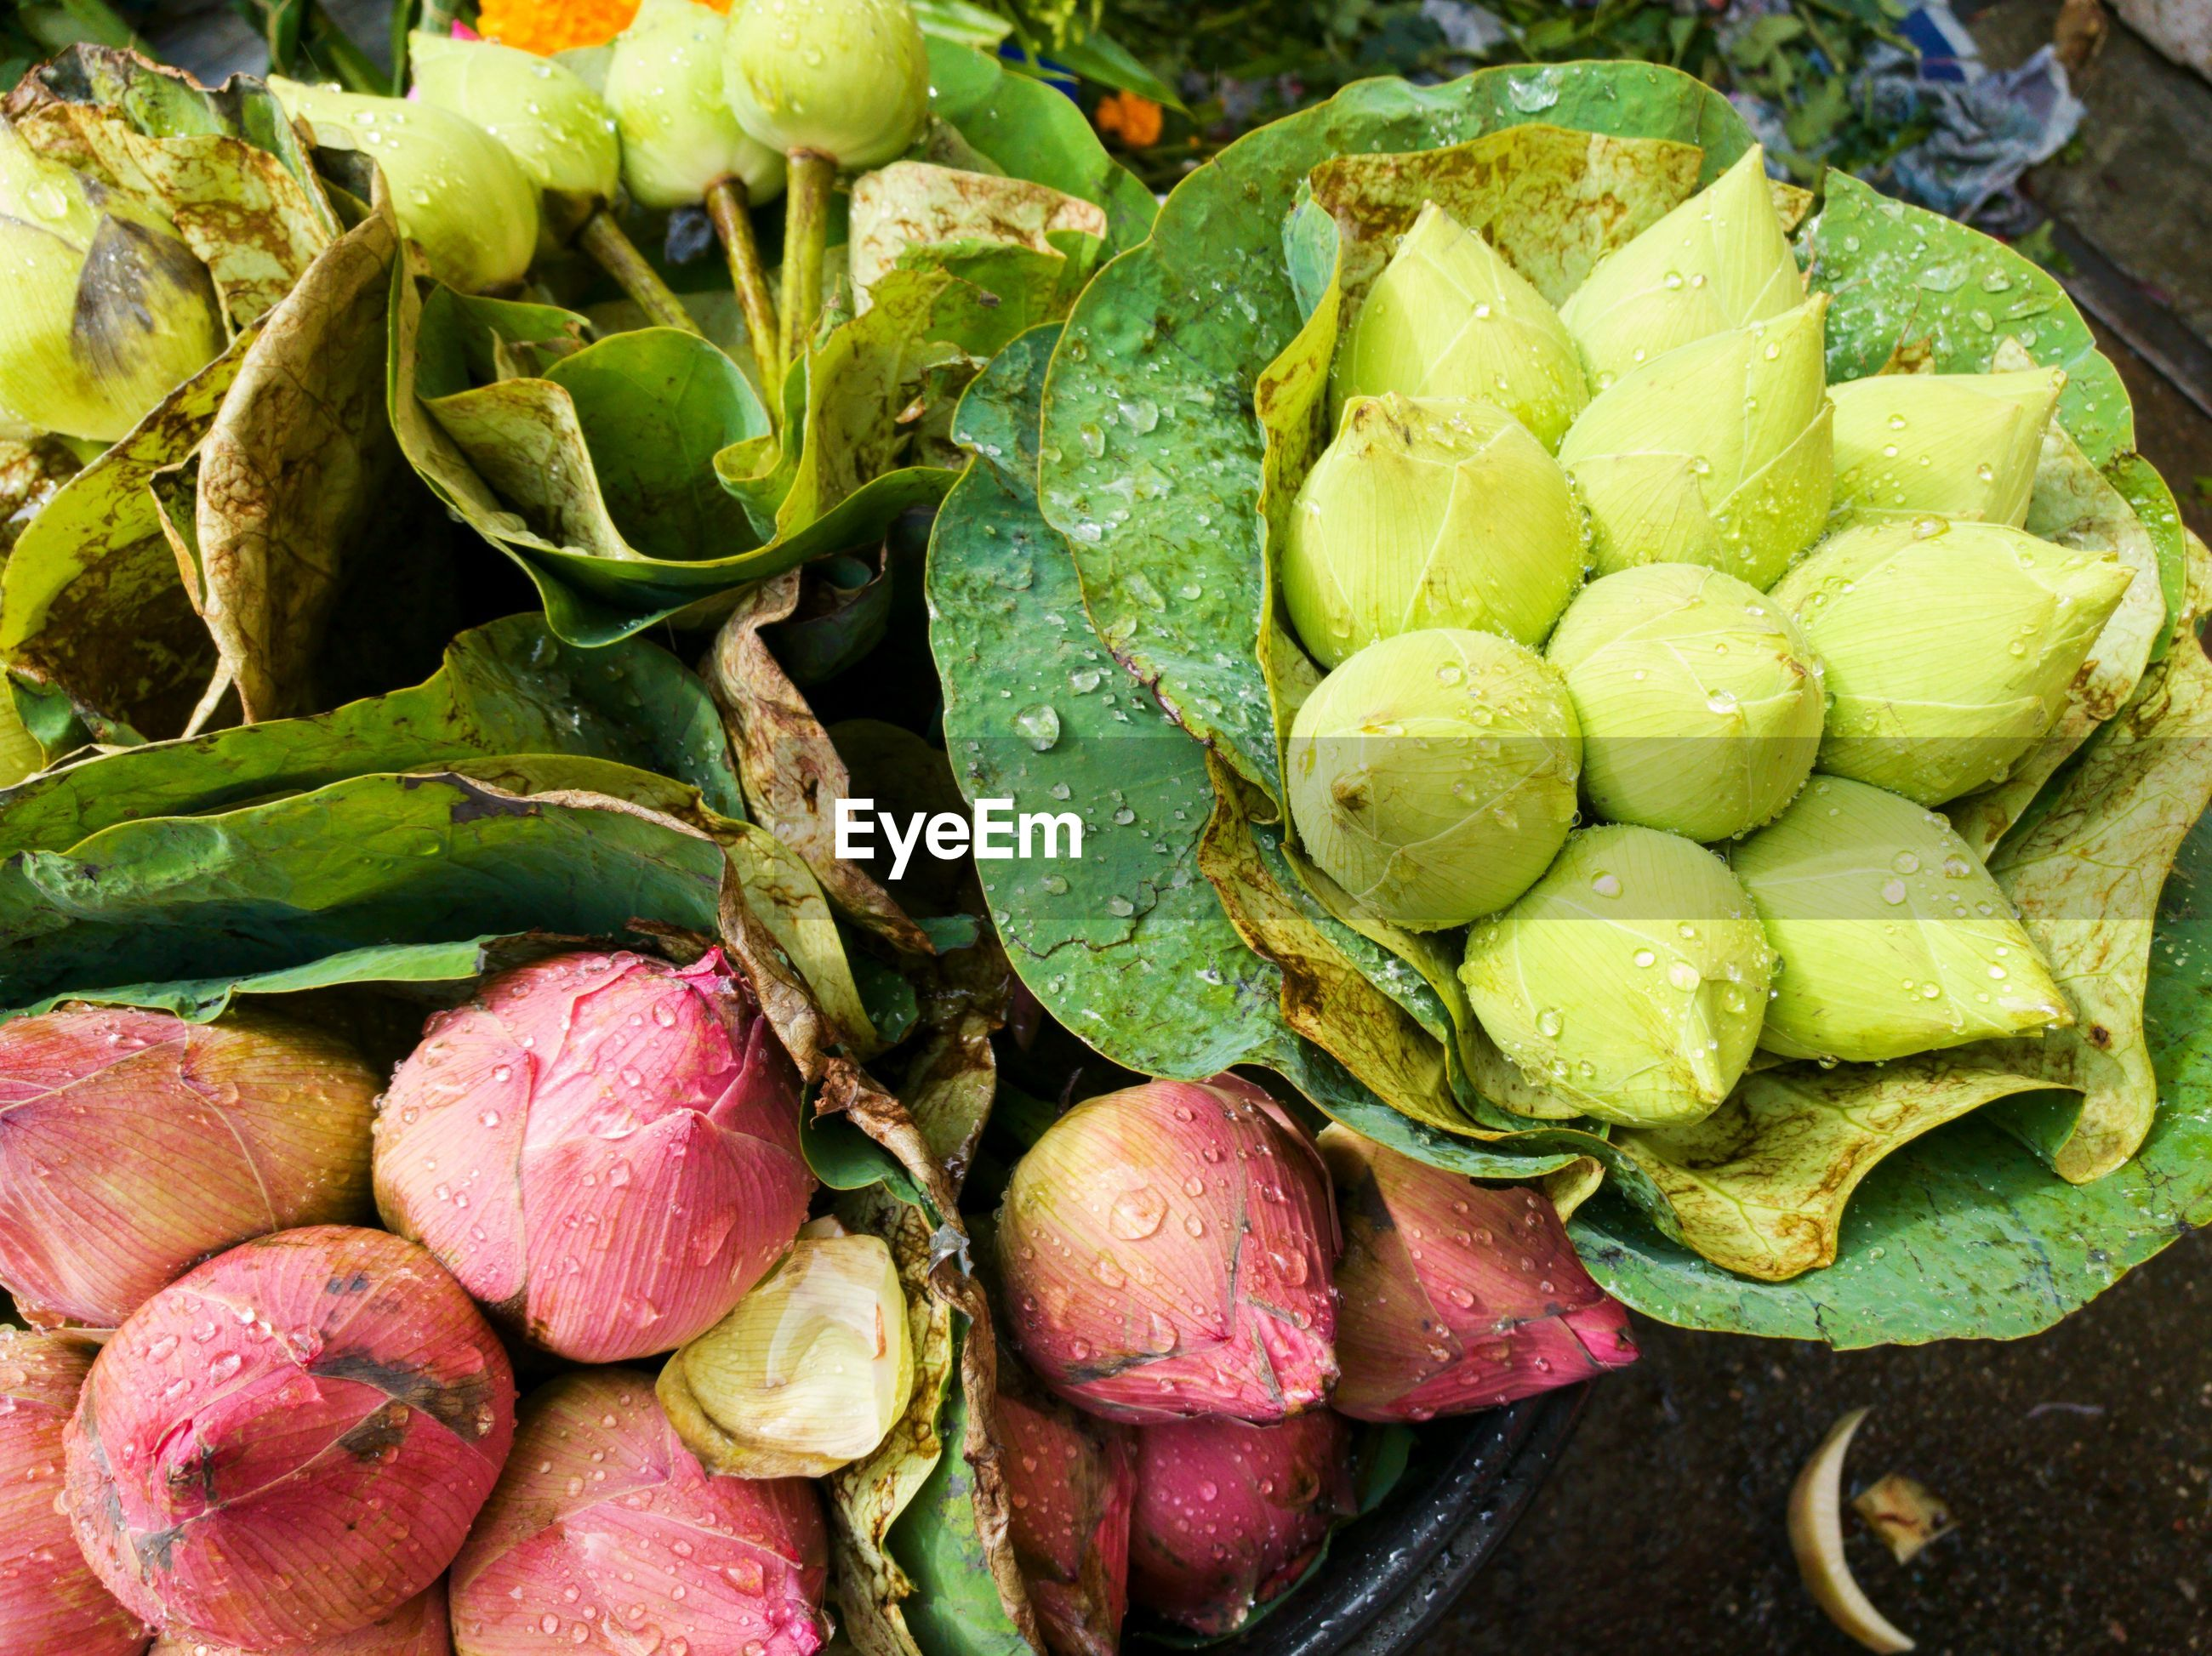 High angle view of vegetables for sale in market